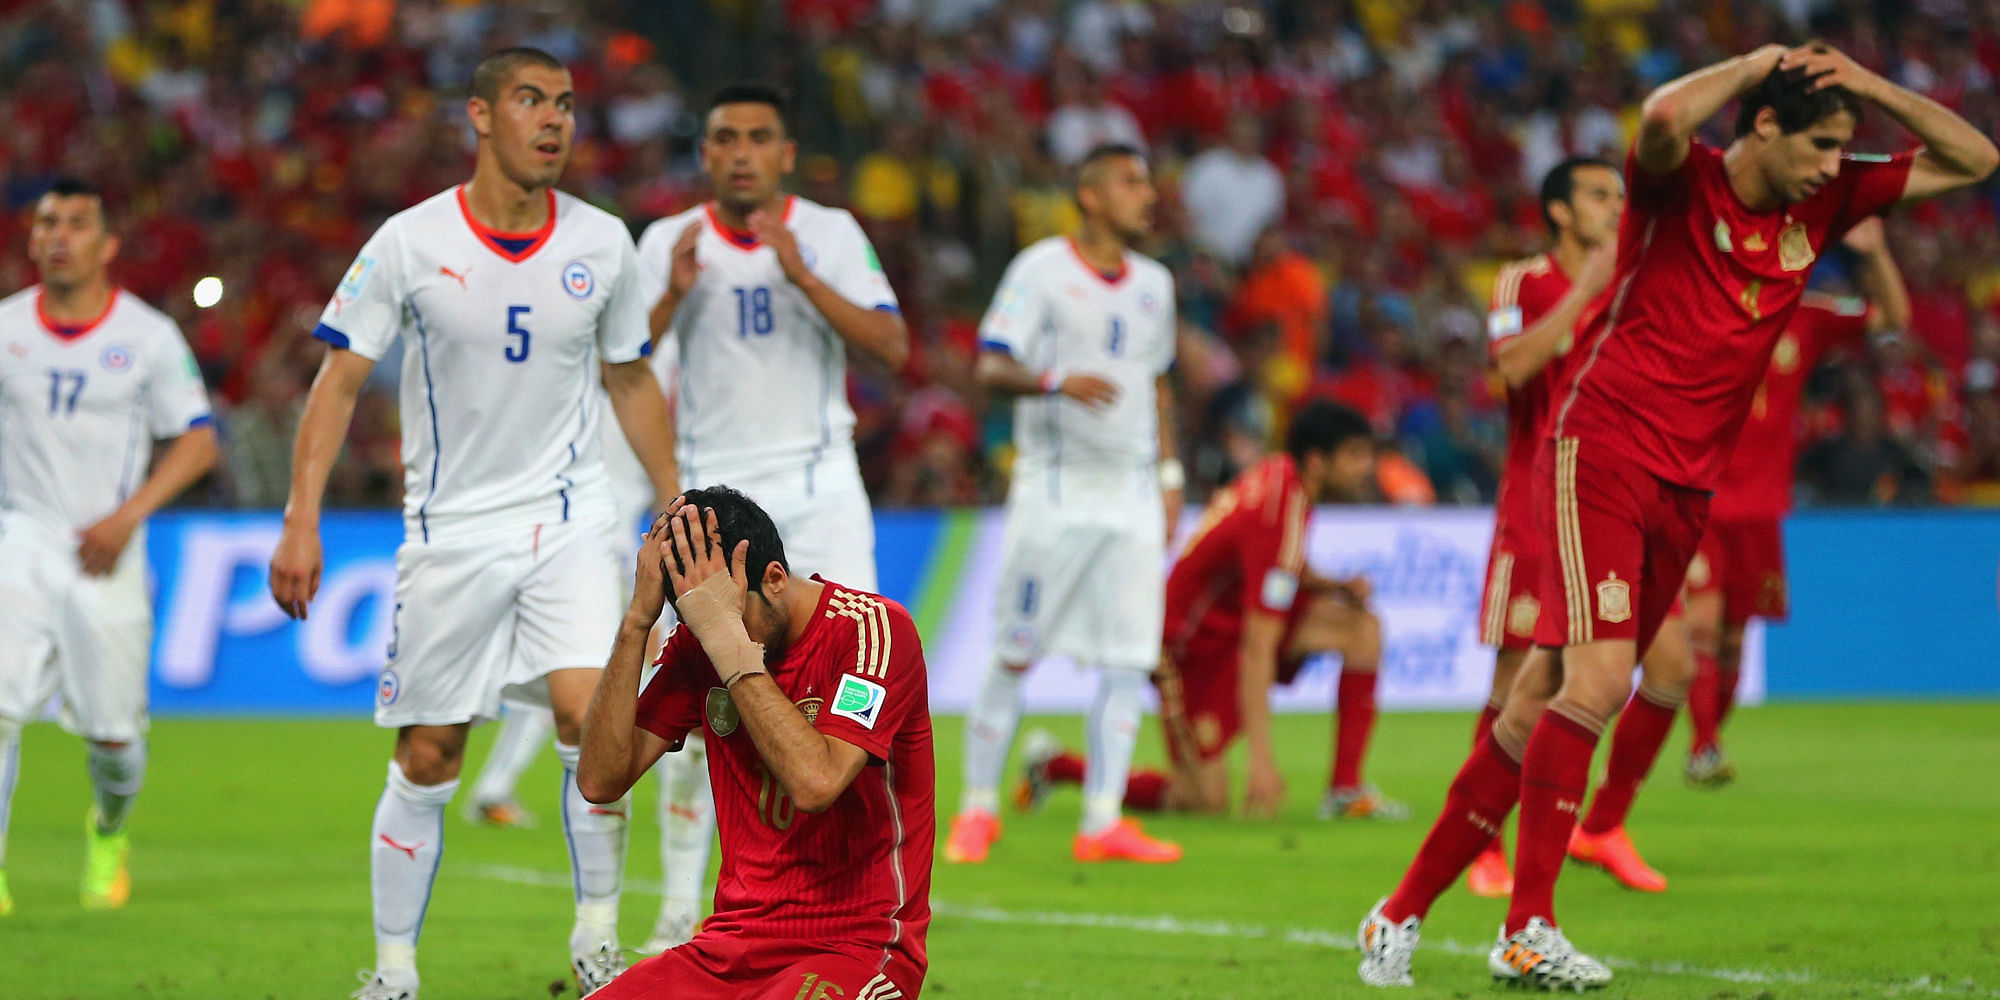 FIFA World Cup 2014: Spain vs Chile - Player ratings